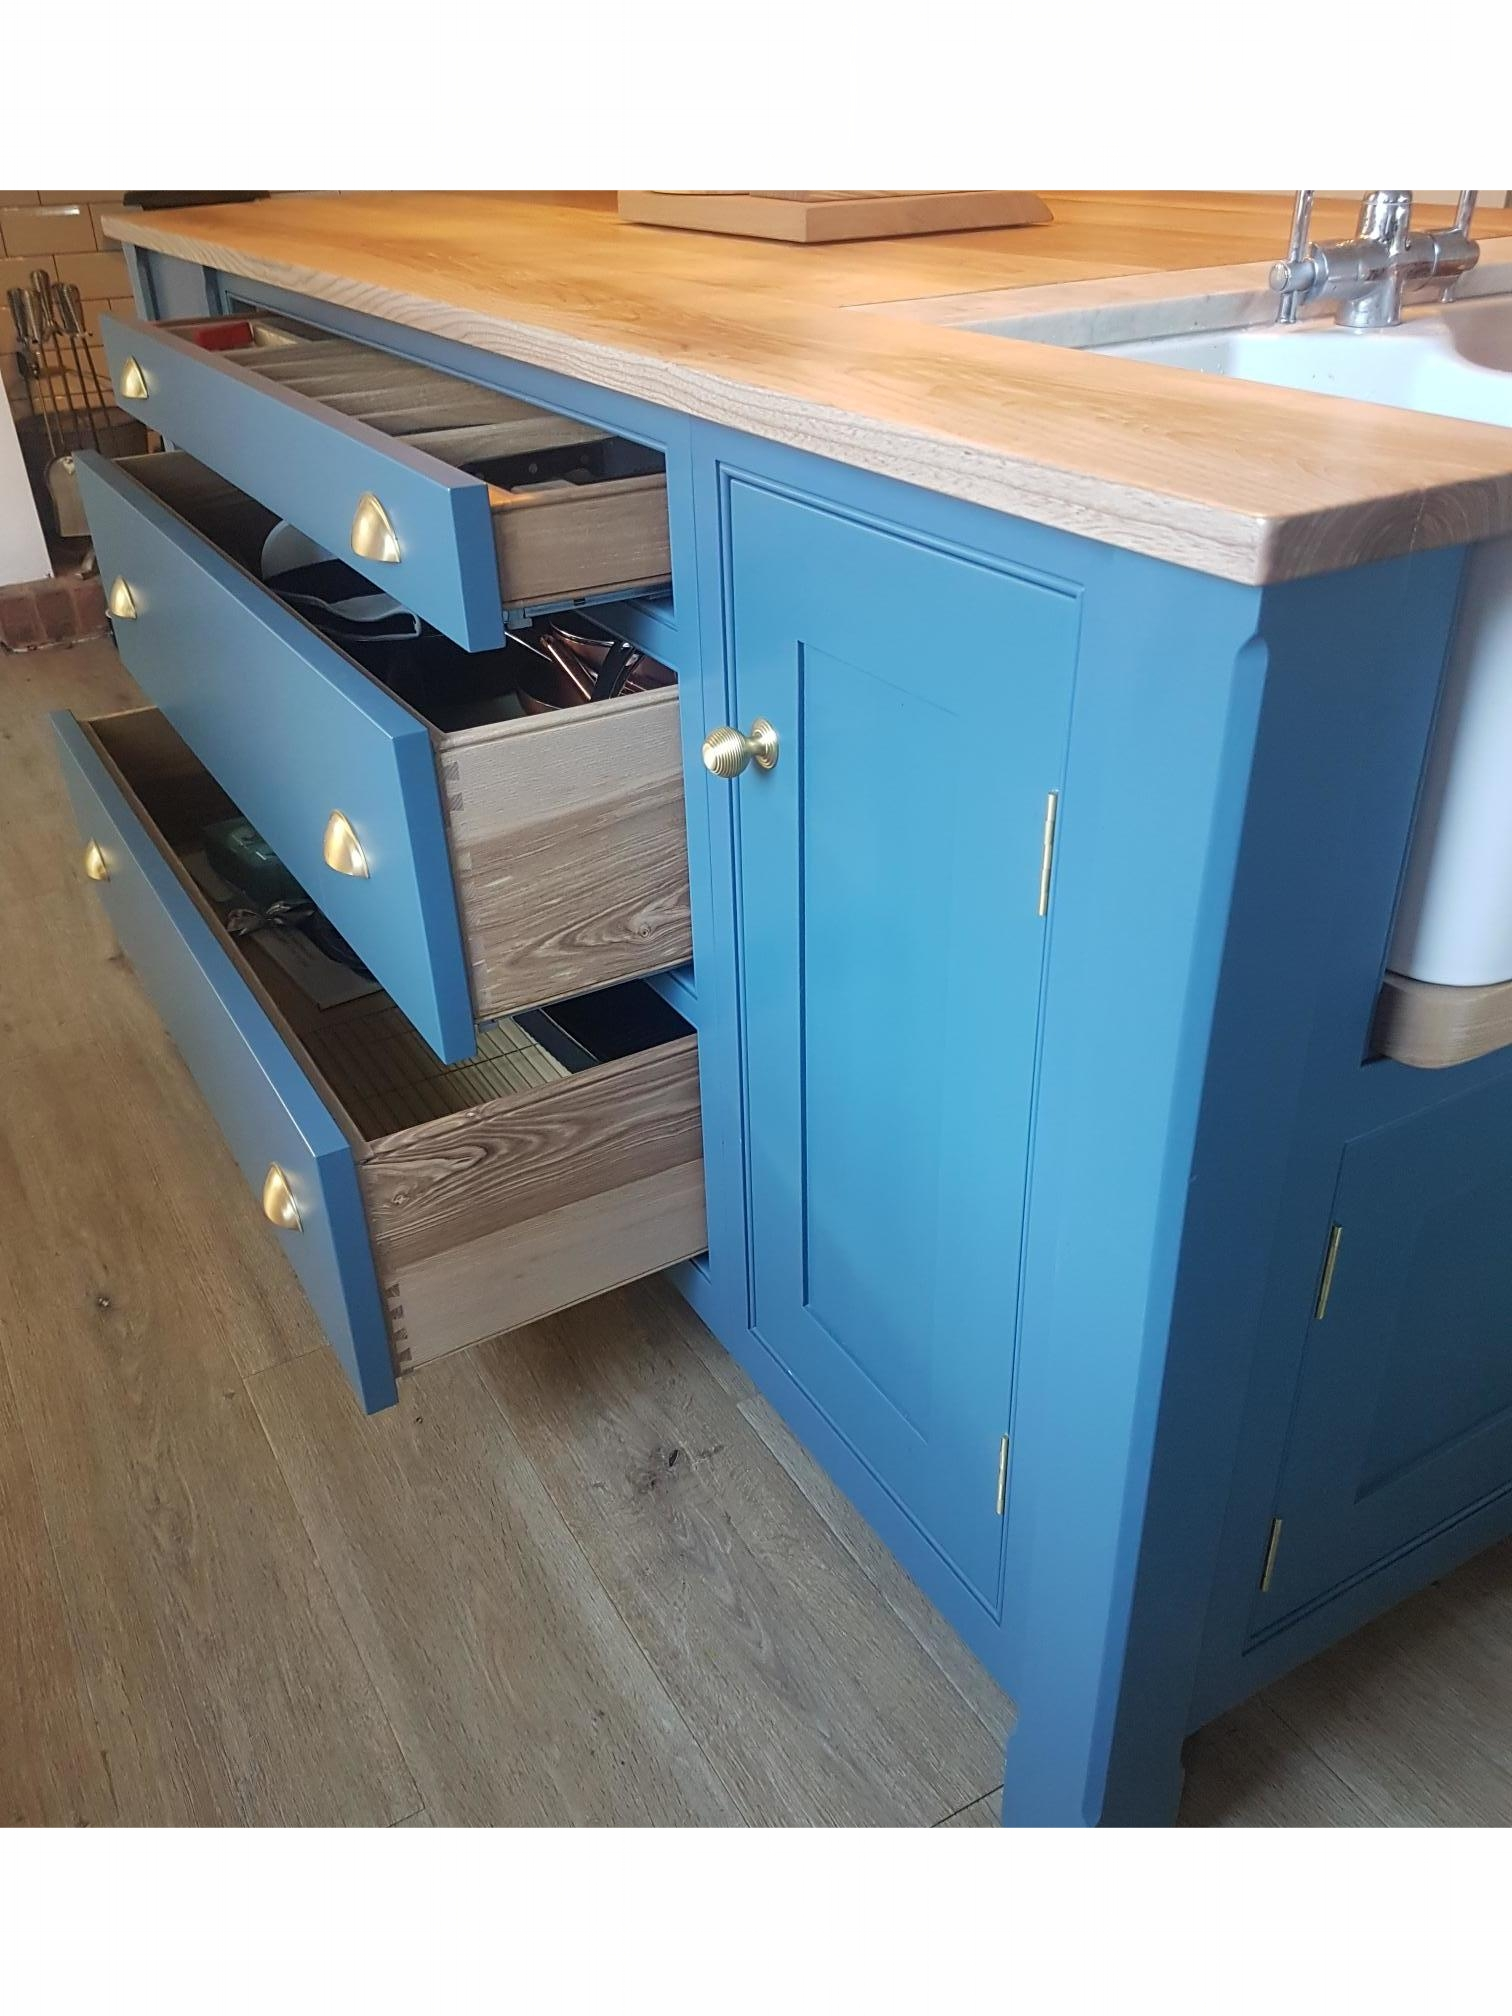 Drawers in a bespoke island unit, making the best of the available storage space.